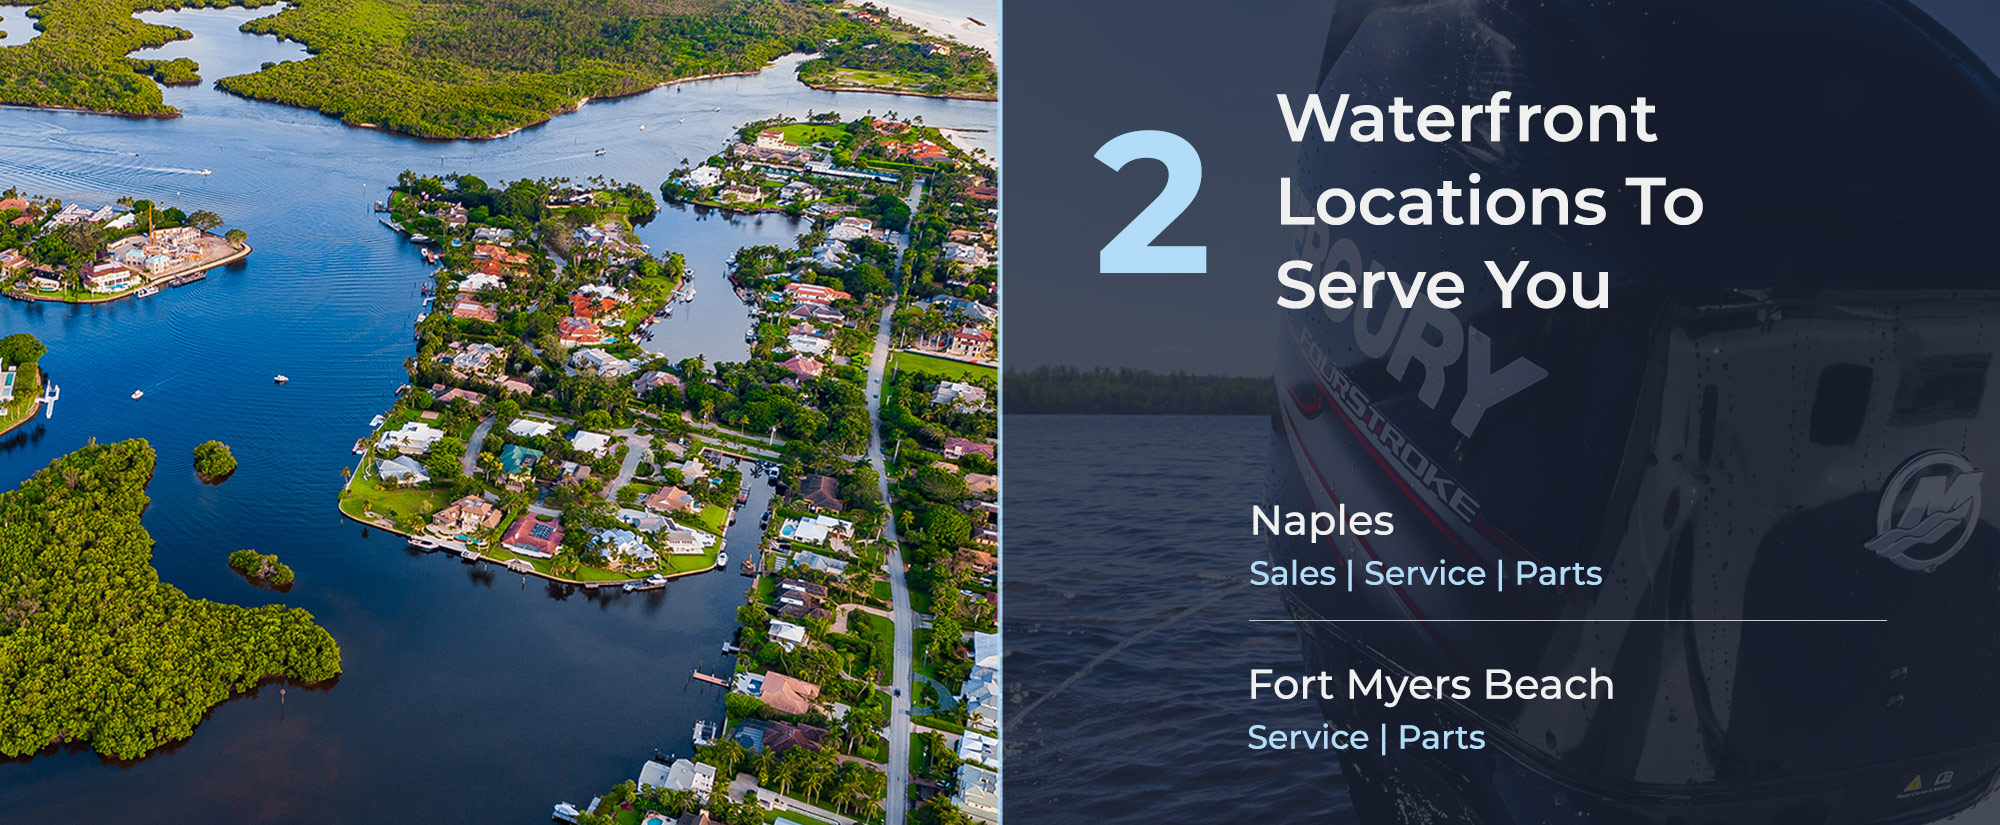 two locations to serve you better - fort myers beach and naples florida